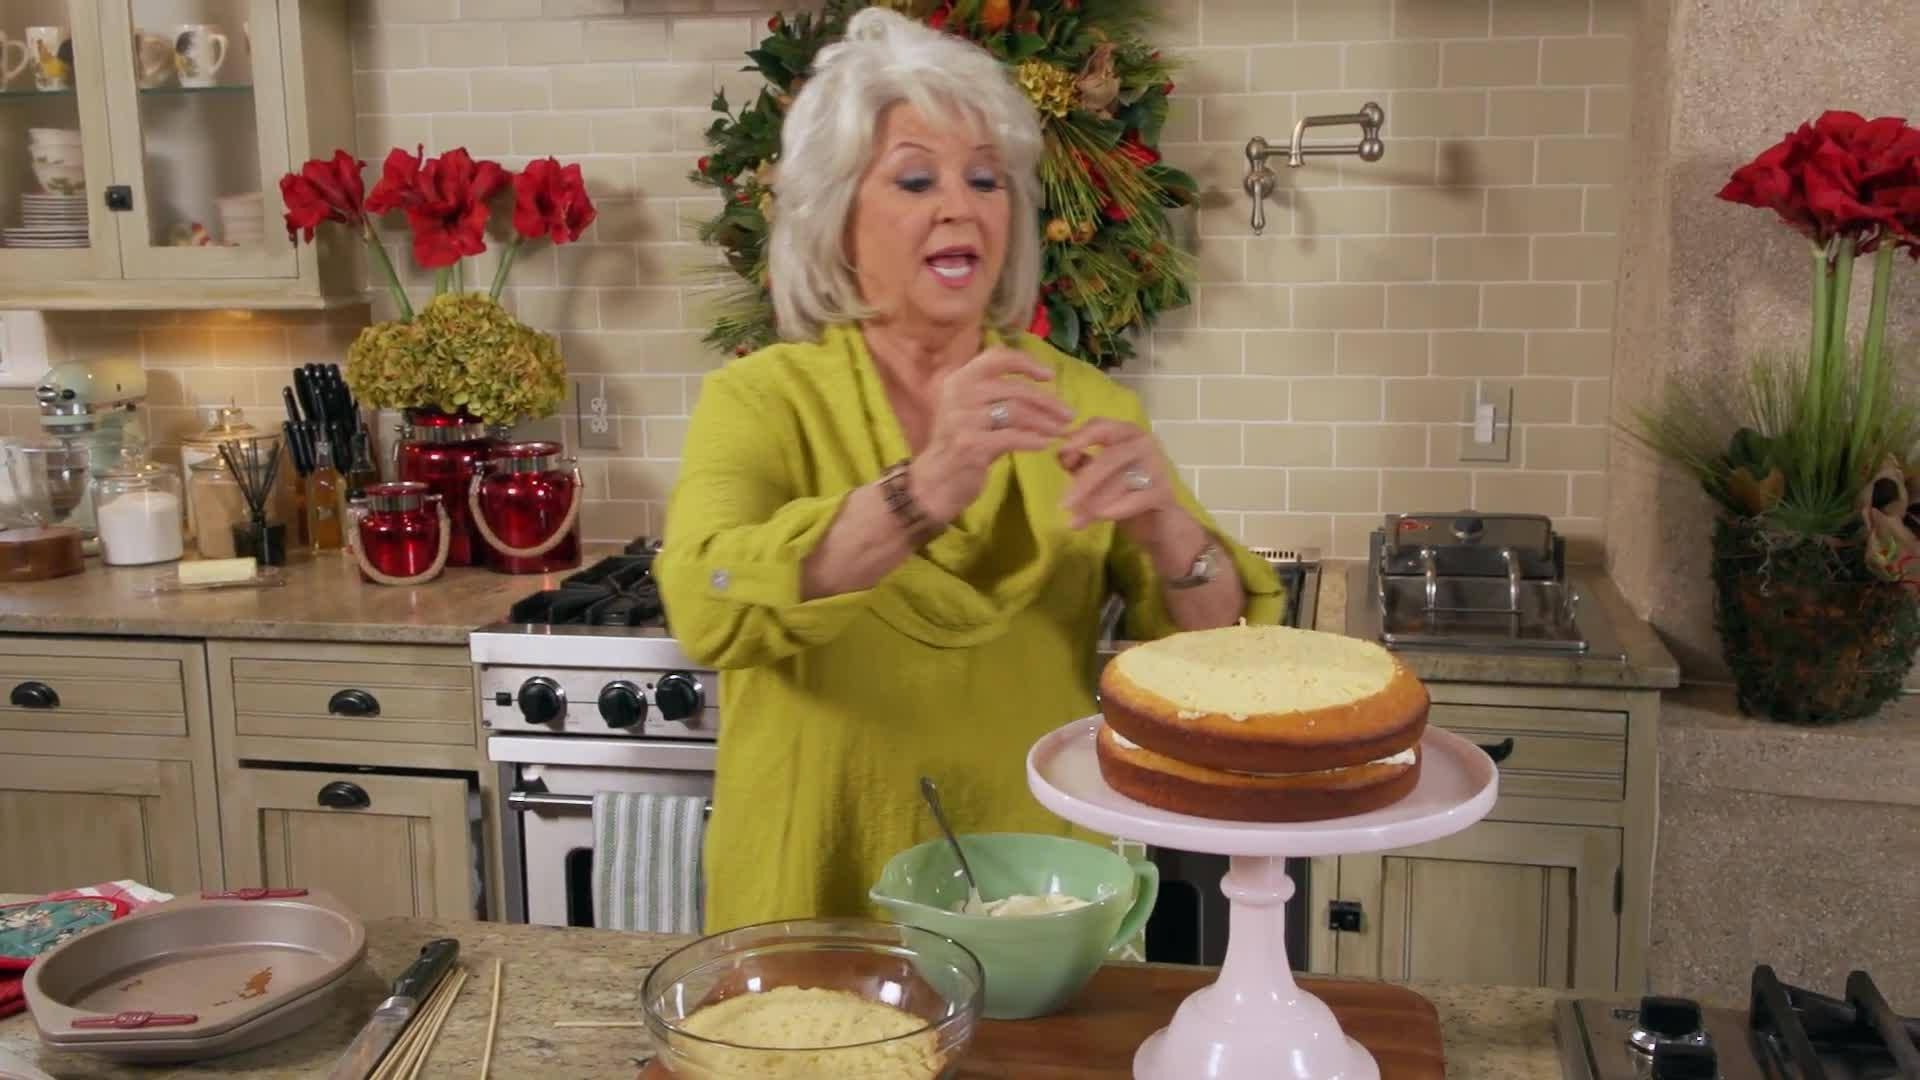 How to Get Rid of a Muffin Top Cake thumbnail